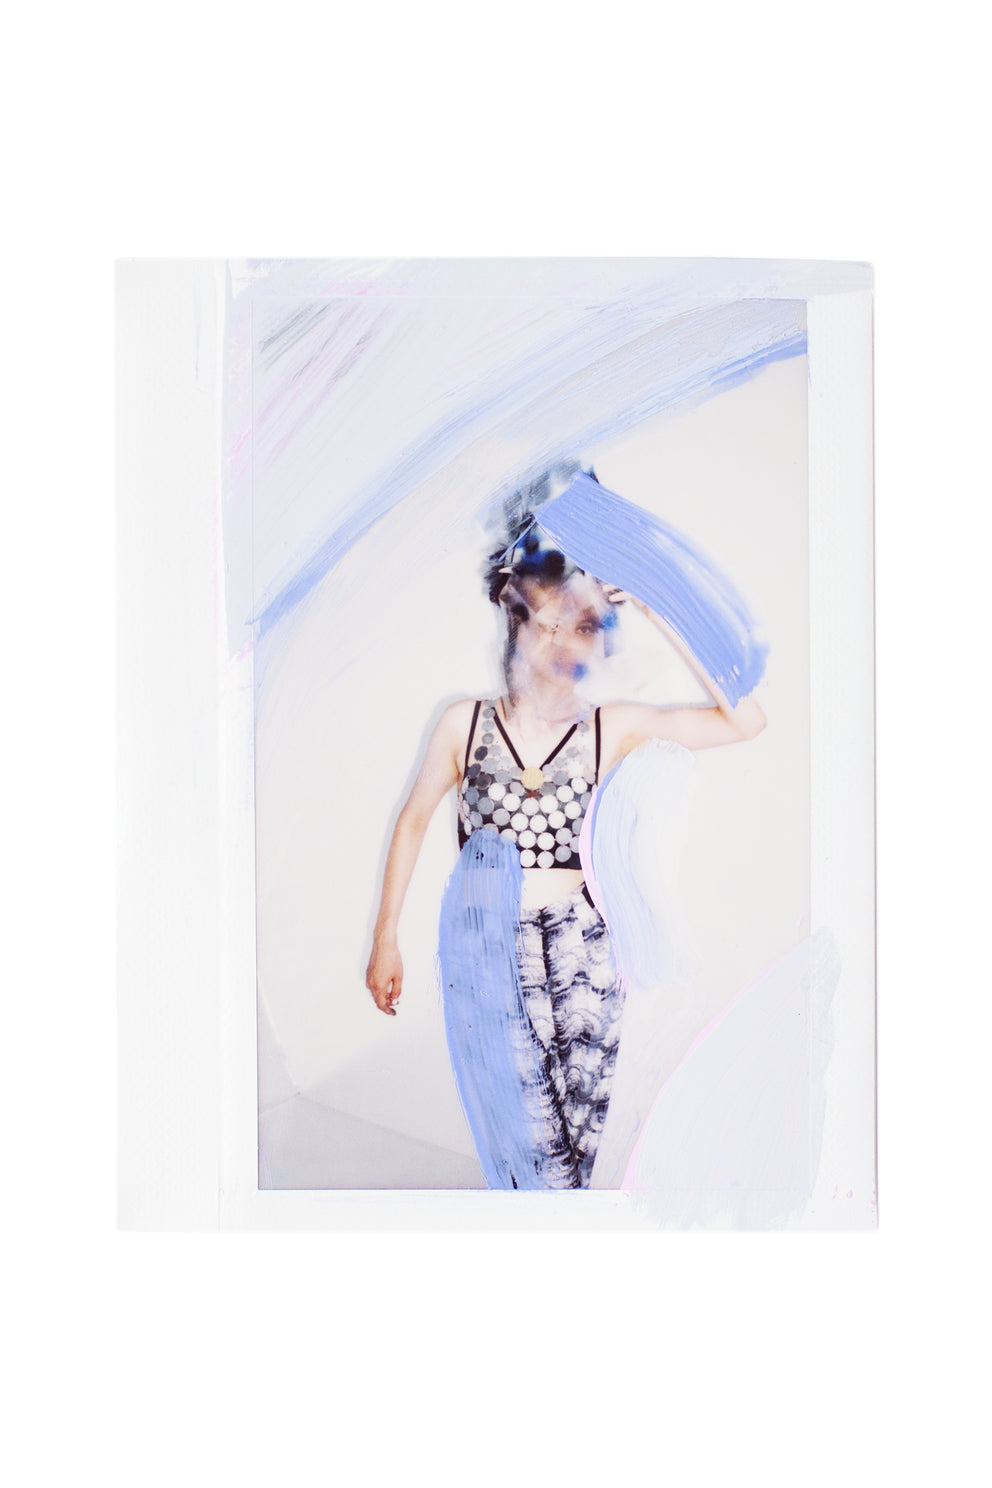 Sara VanDerBeek: Process Polaroid from Tar Fashion Issue 4